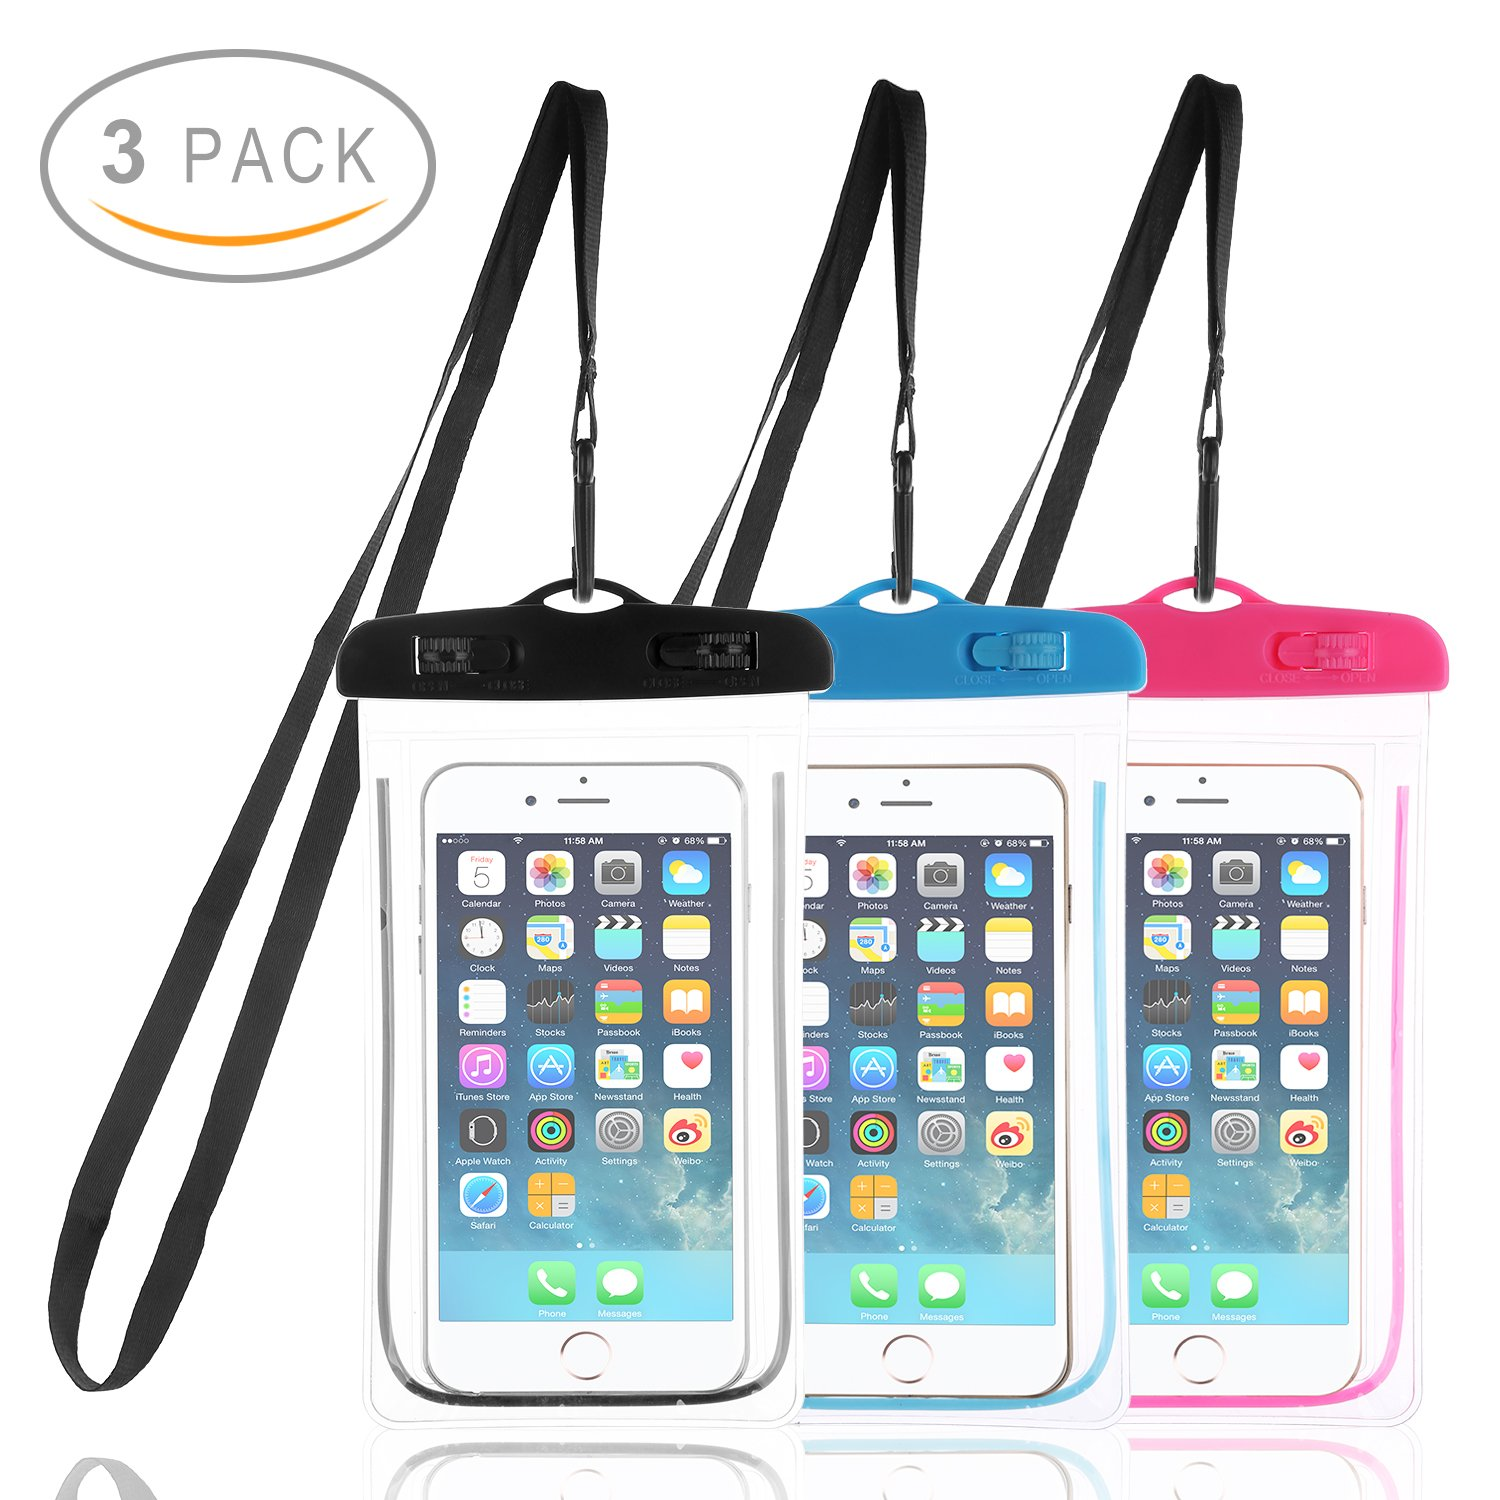 Waterproof Case, JTCTC 3 Pack Waterproof Phone Cases, Dry Bag, Pouch for iPhone X iPhone 8/8 Plus 7/7 Plus 6/6S Plus Samsung Galaxy S8 S7 S6 Edge and Other Phones up To 6'' (Black, Pink, Blue)